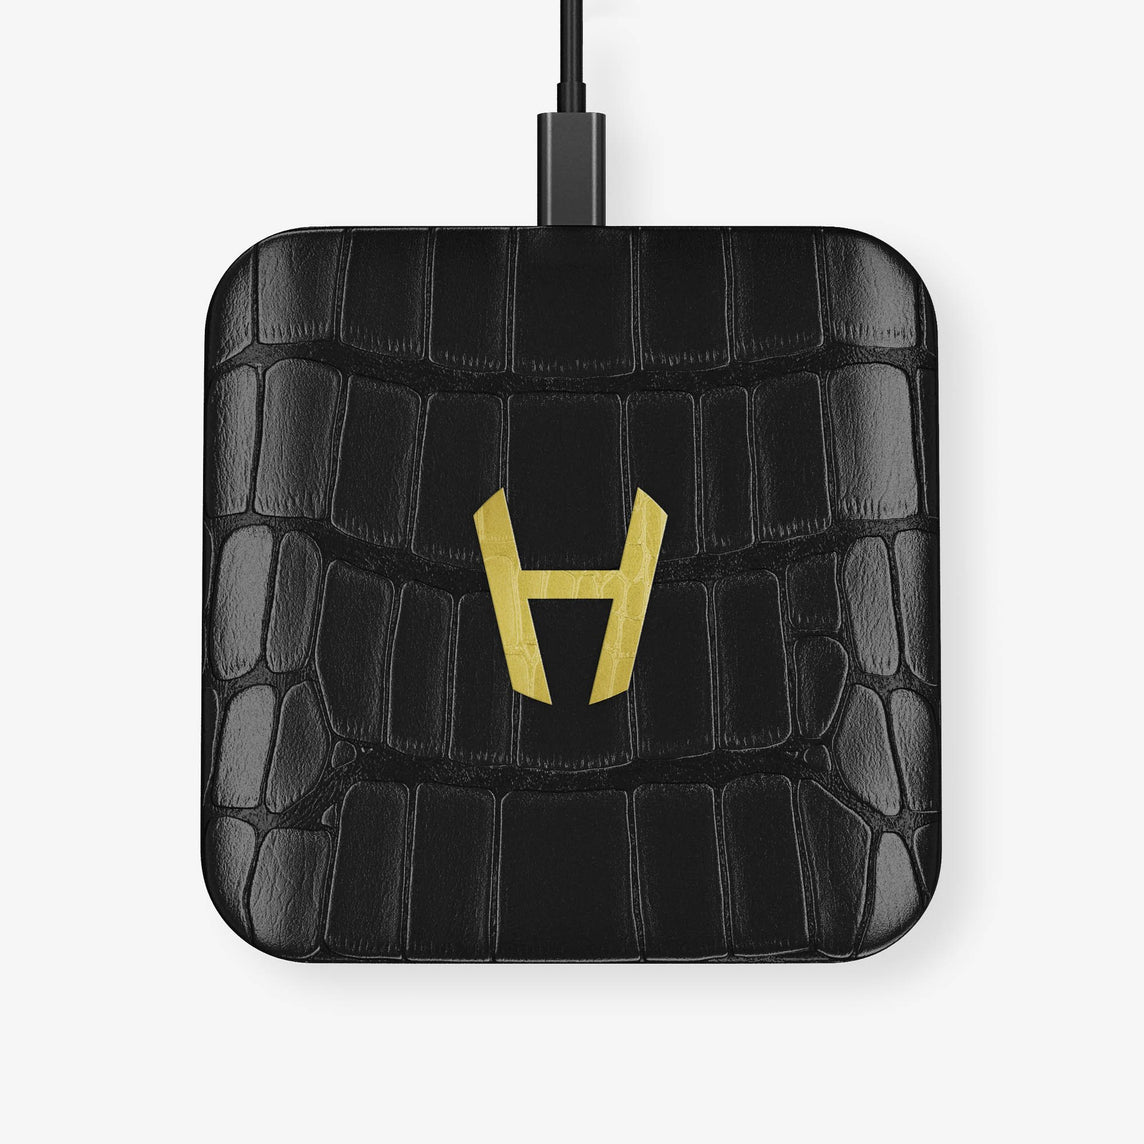 Alligator Hadoro Wireless Charging Pad | Black - Yellow Gold without-personalization